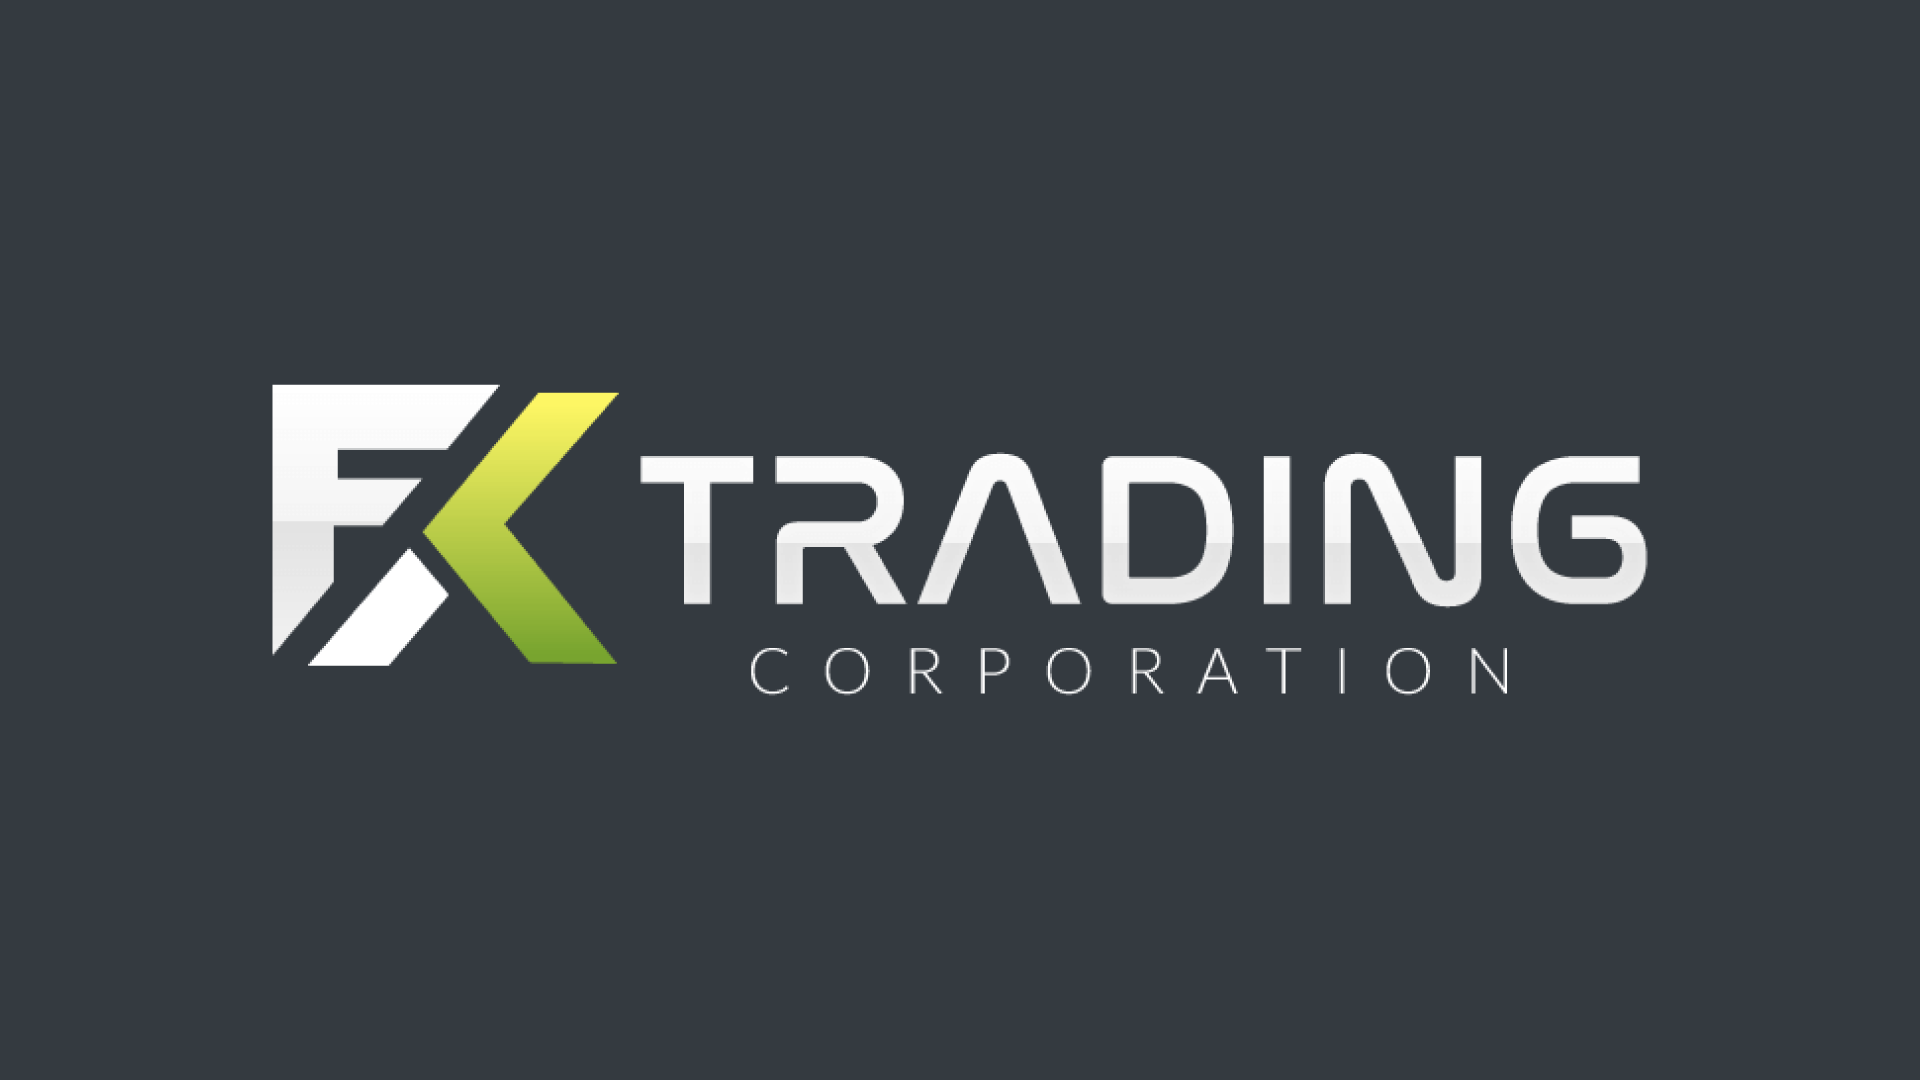 FXTrading Corp Review – Why should you avoid it